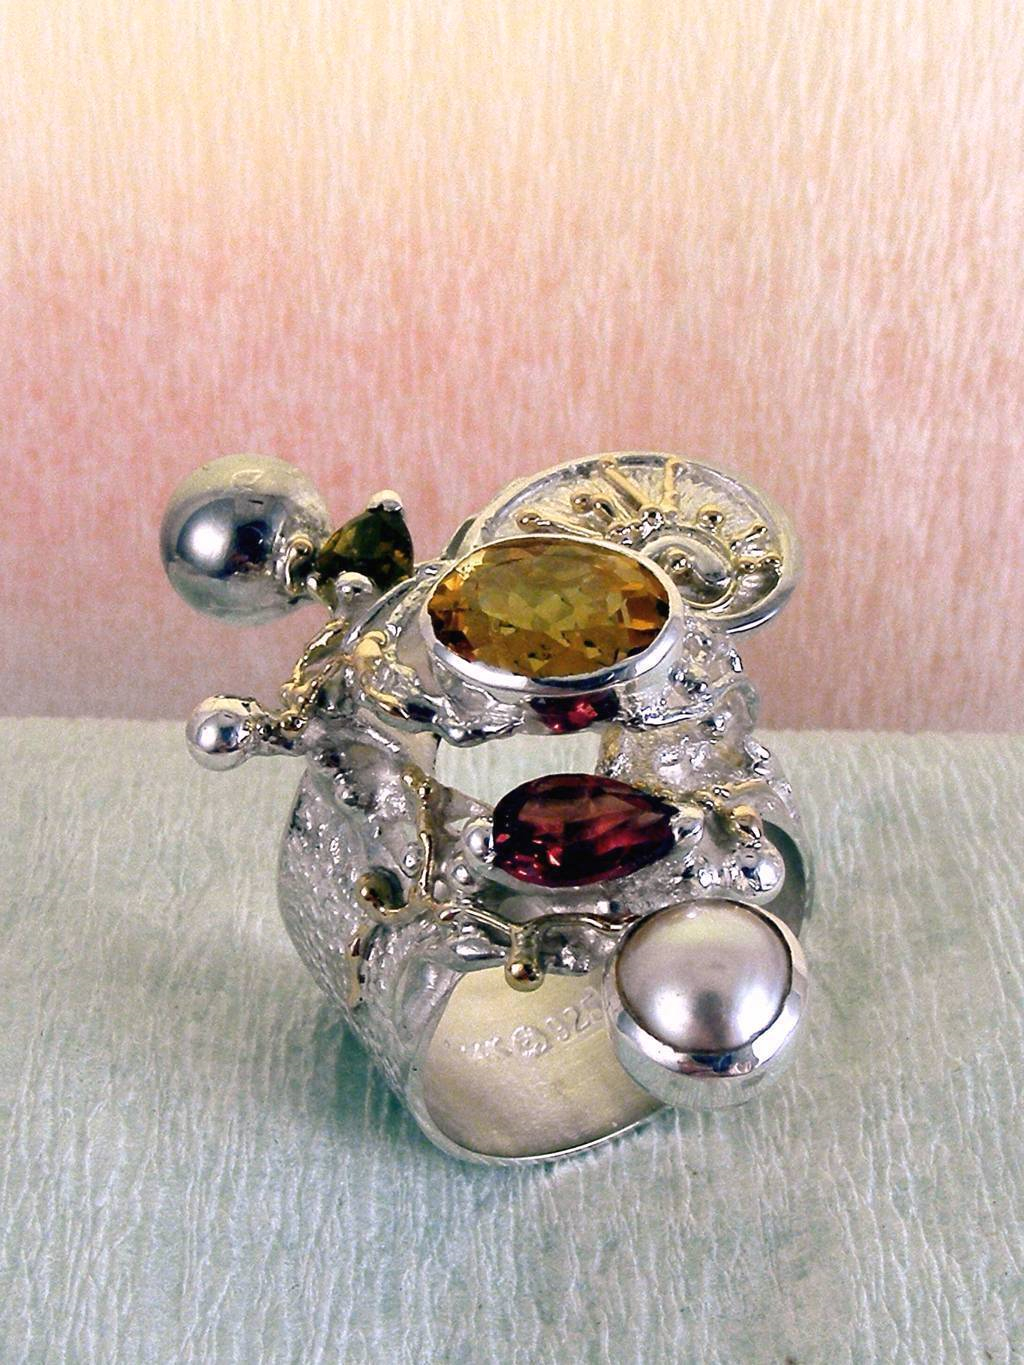 one of a kind jewellery, handmade artisan jewellery, mixed metal artisan jewellery, artisan jewellery with gemstones and pearls, Band #Ring 9435